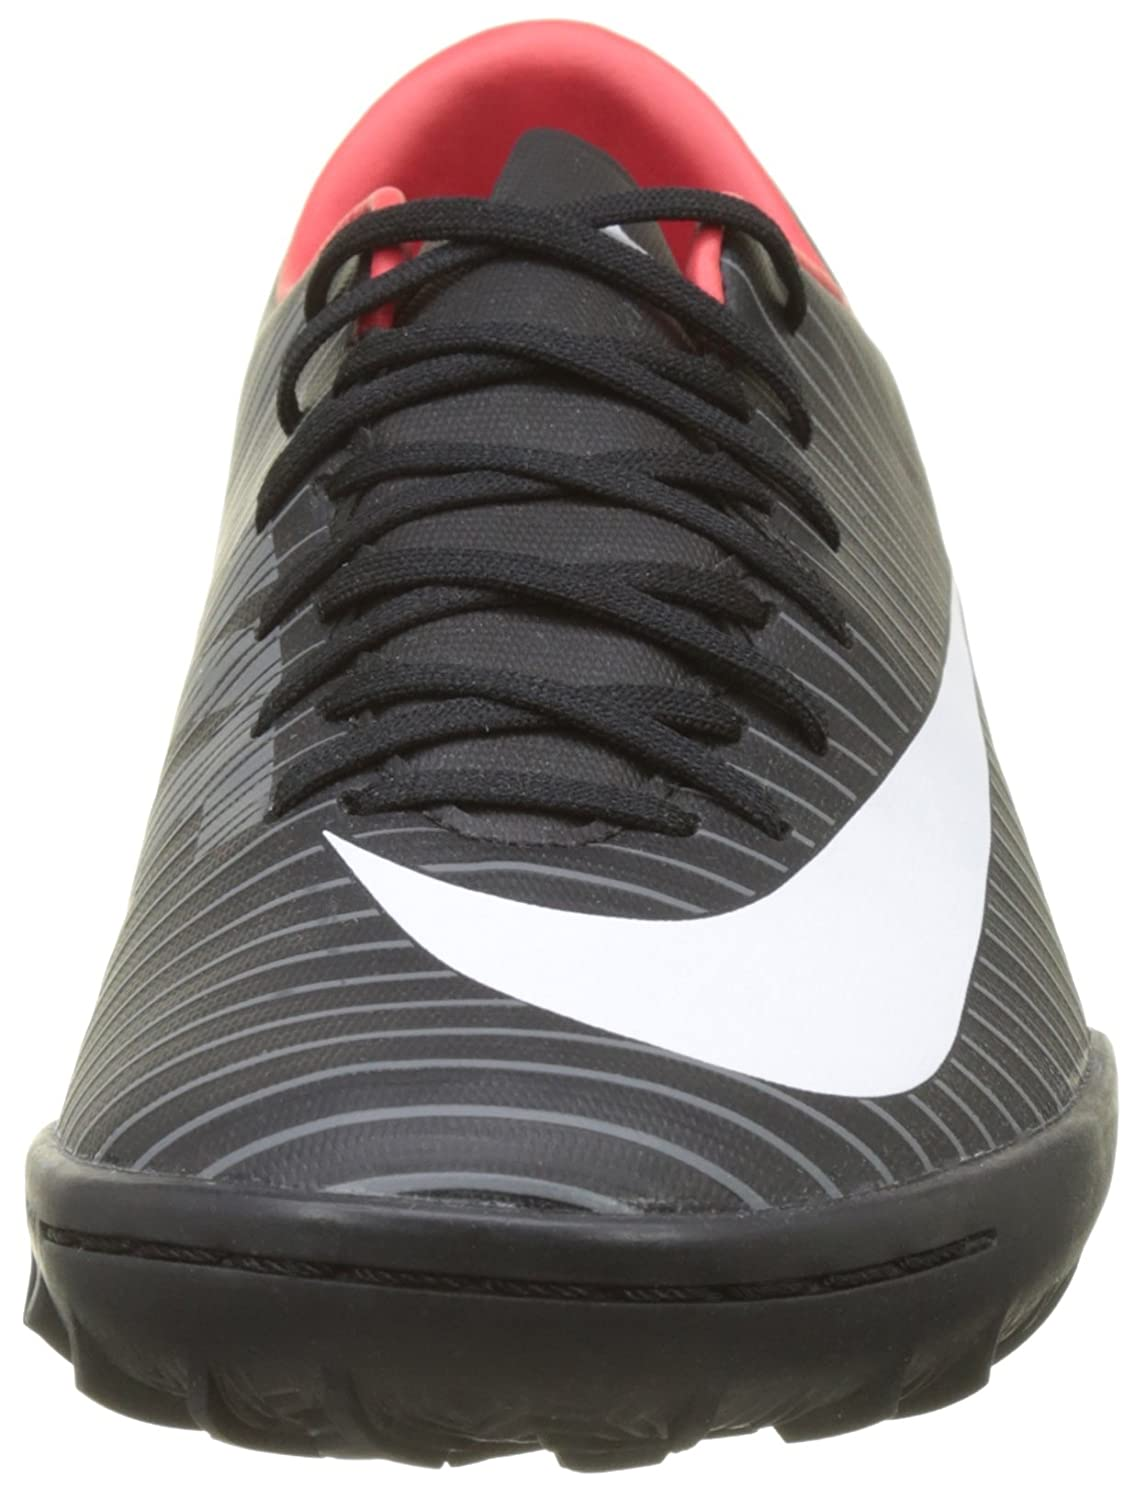 Chaussures de Football Homme Nike MercurialX Victory VI TF